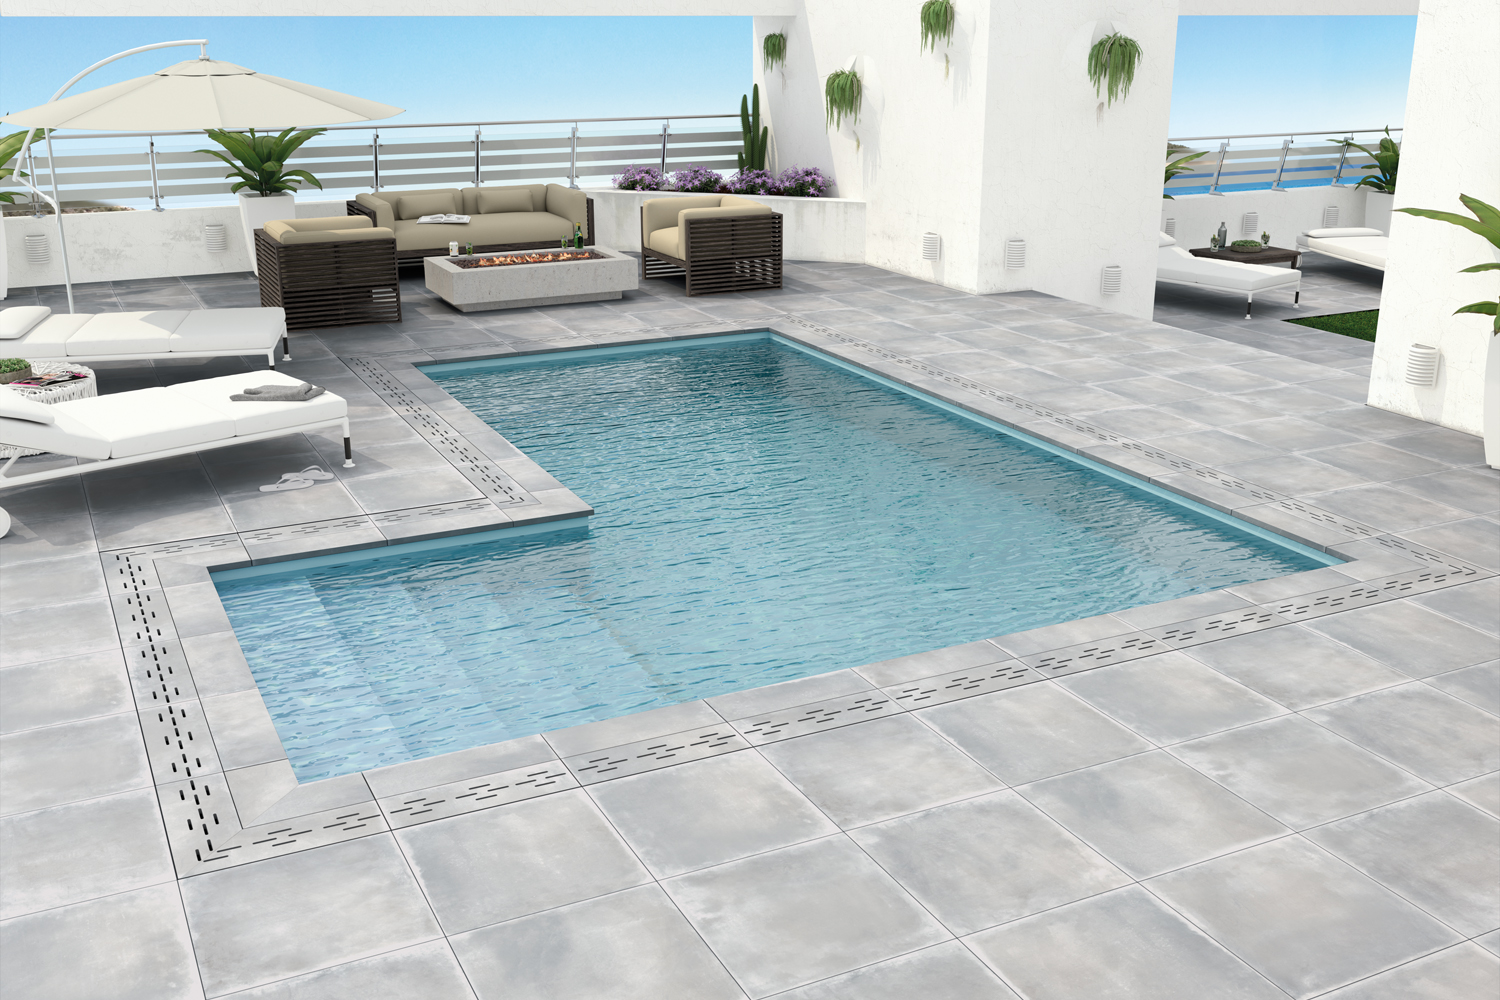 Carrelage pour piscine beton catalogue photos couleur d for Frise pour piscine beton